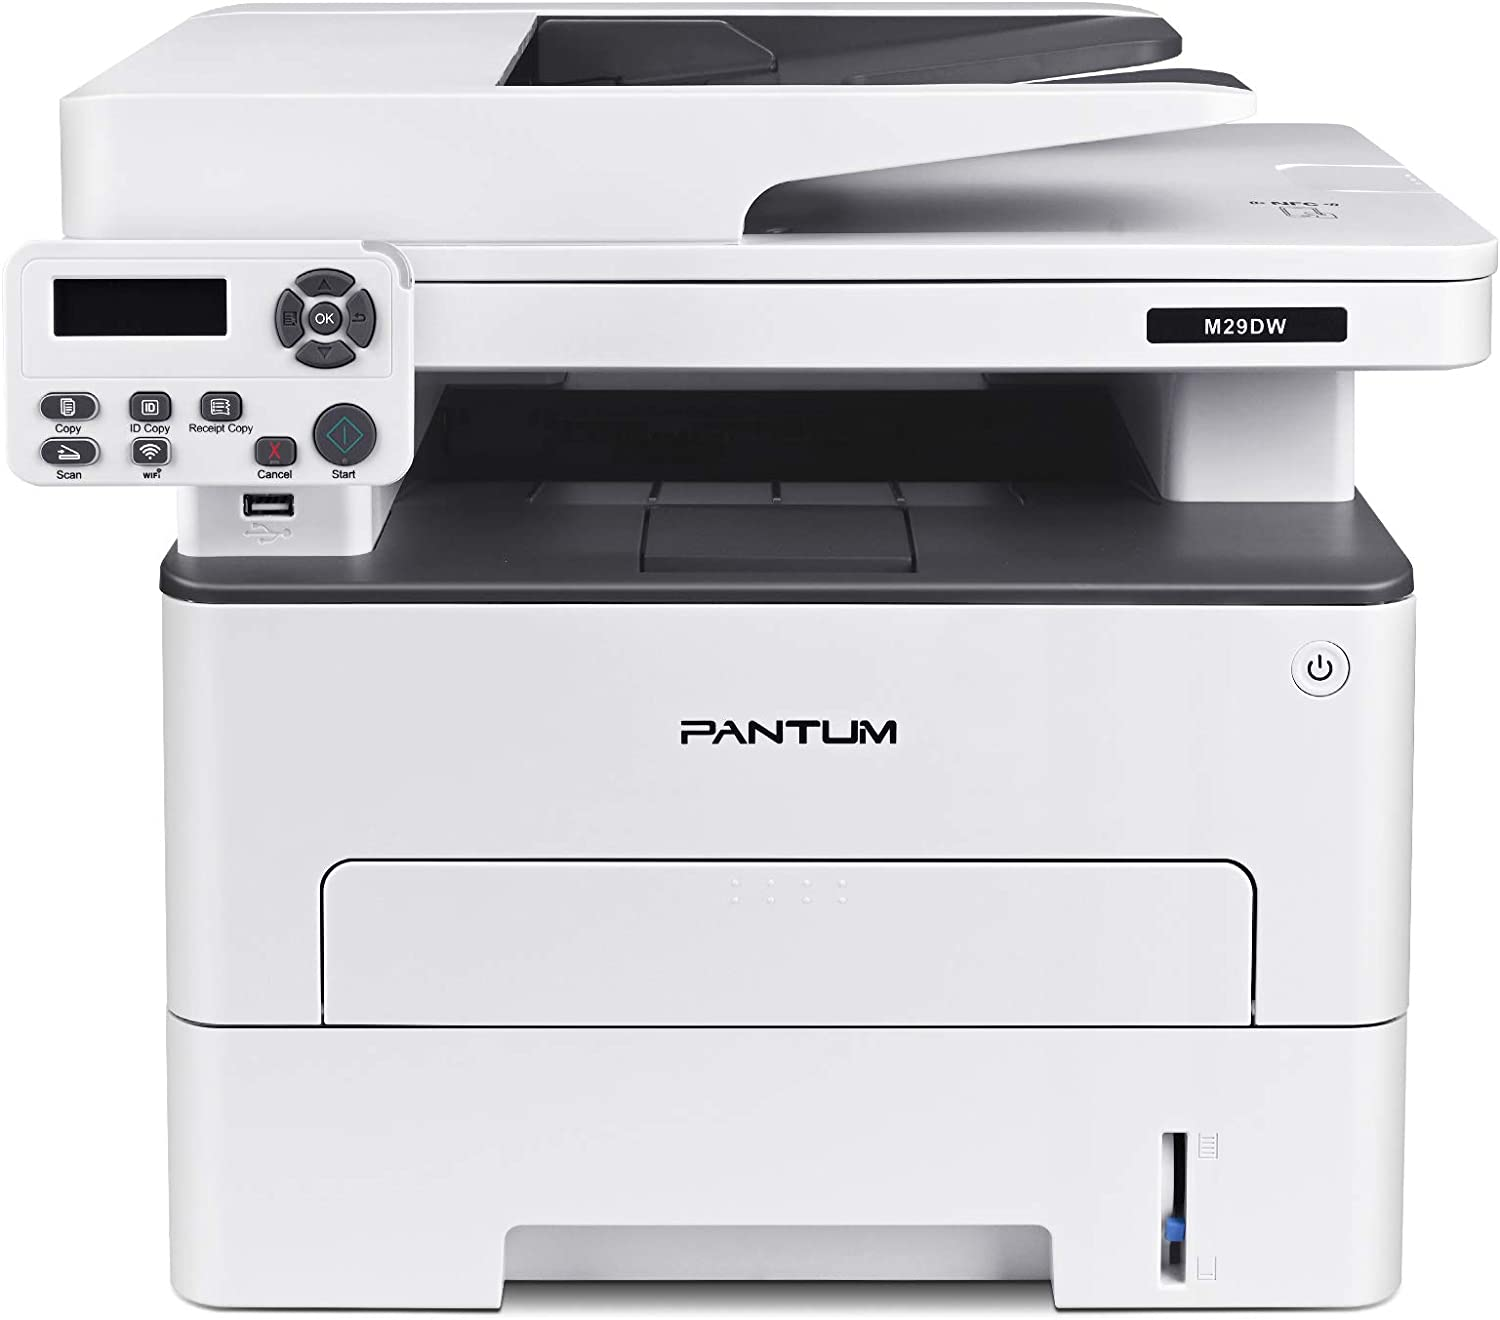 All-in-one Laser Printer with Scanner Copier, Wireless&Auto Two-Sided Printing, Print at 35PPM, Pantum M29DW(V3T76A)